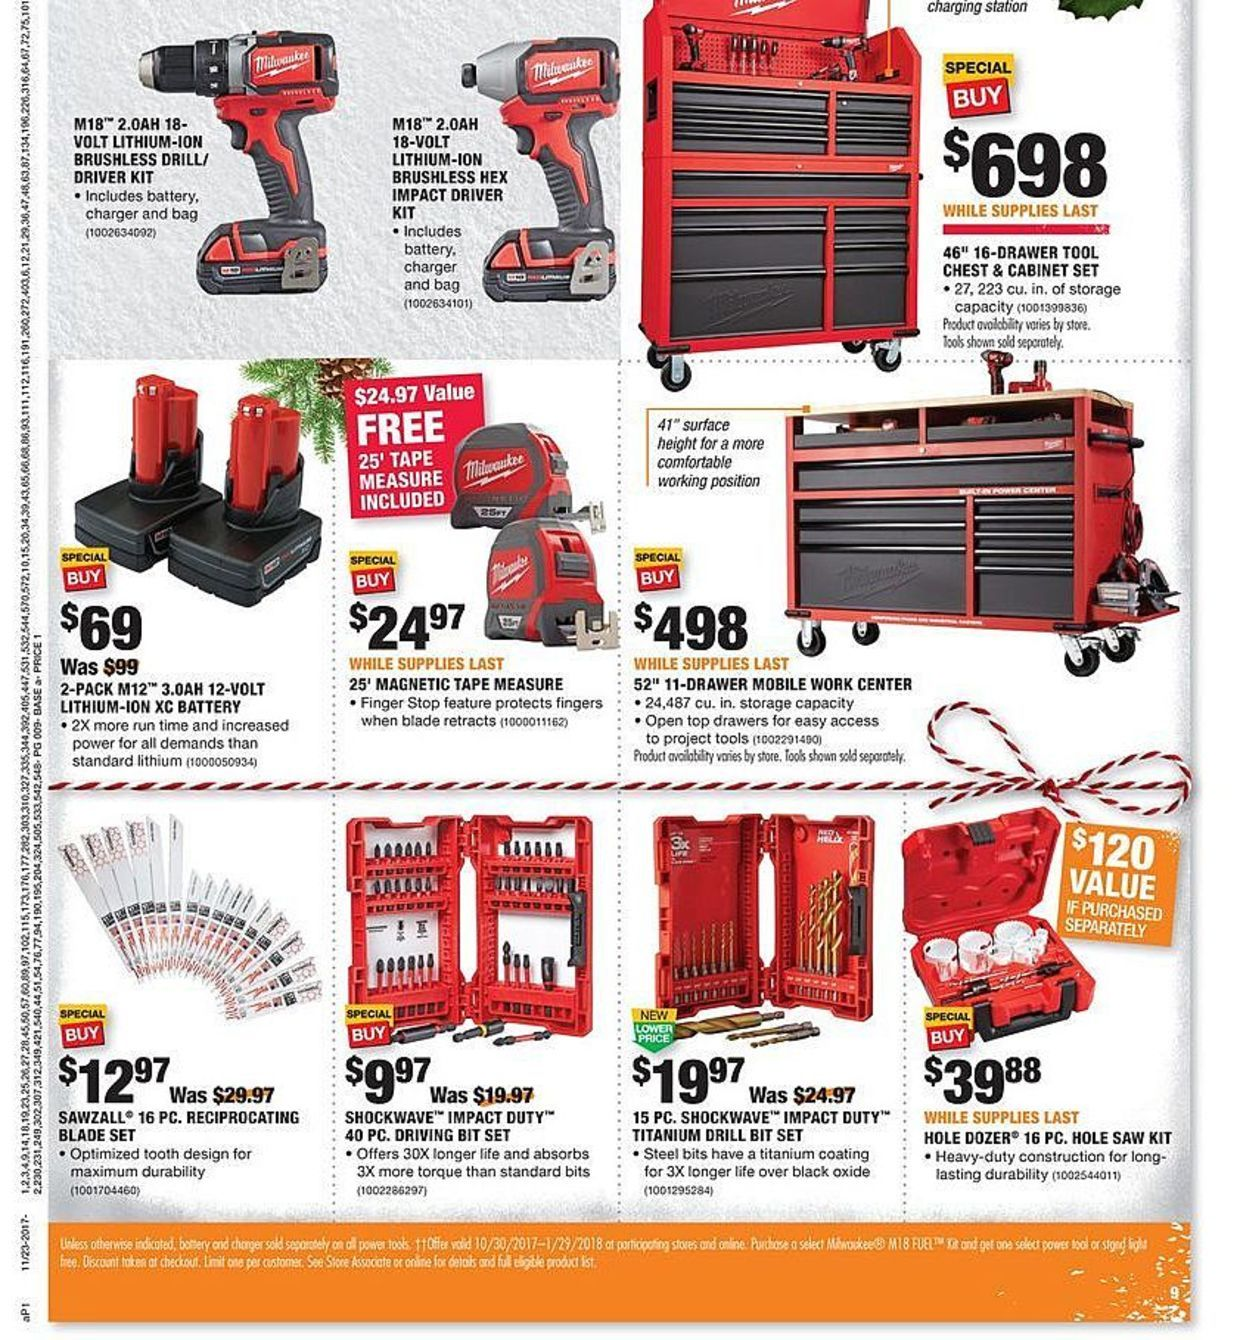 Home Depot Black Friday 2017 Ads And Deals As Usual Home Depot Is One Of The Best Black Friday Sales For Home Depot Coupons Black Friday 2017 Ads Black Friday